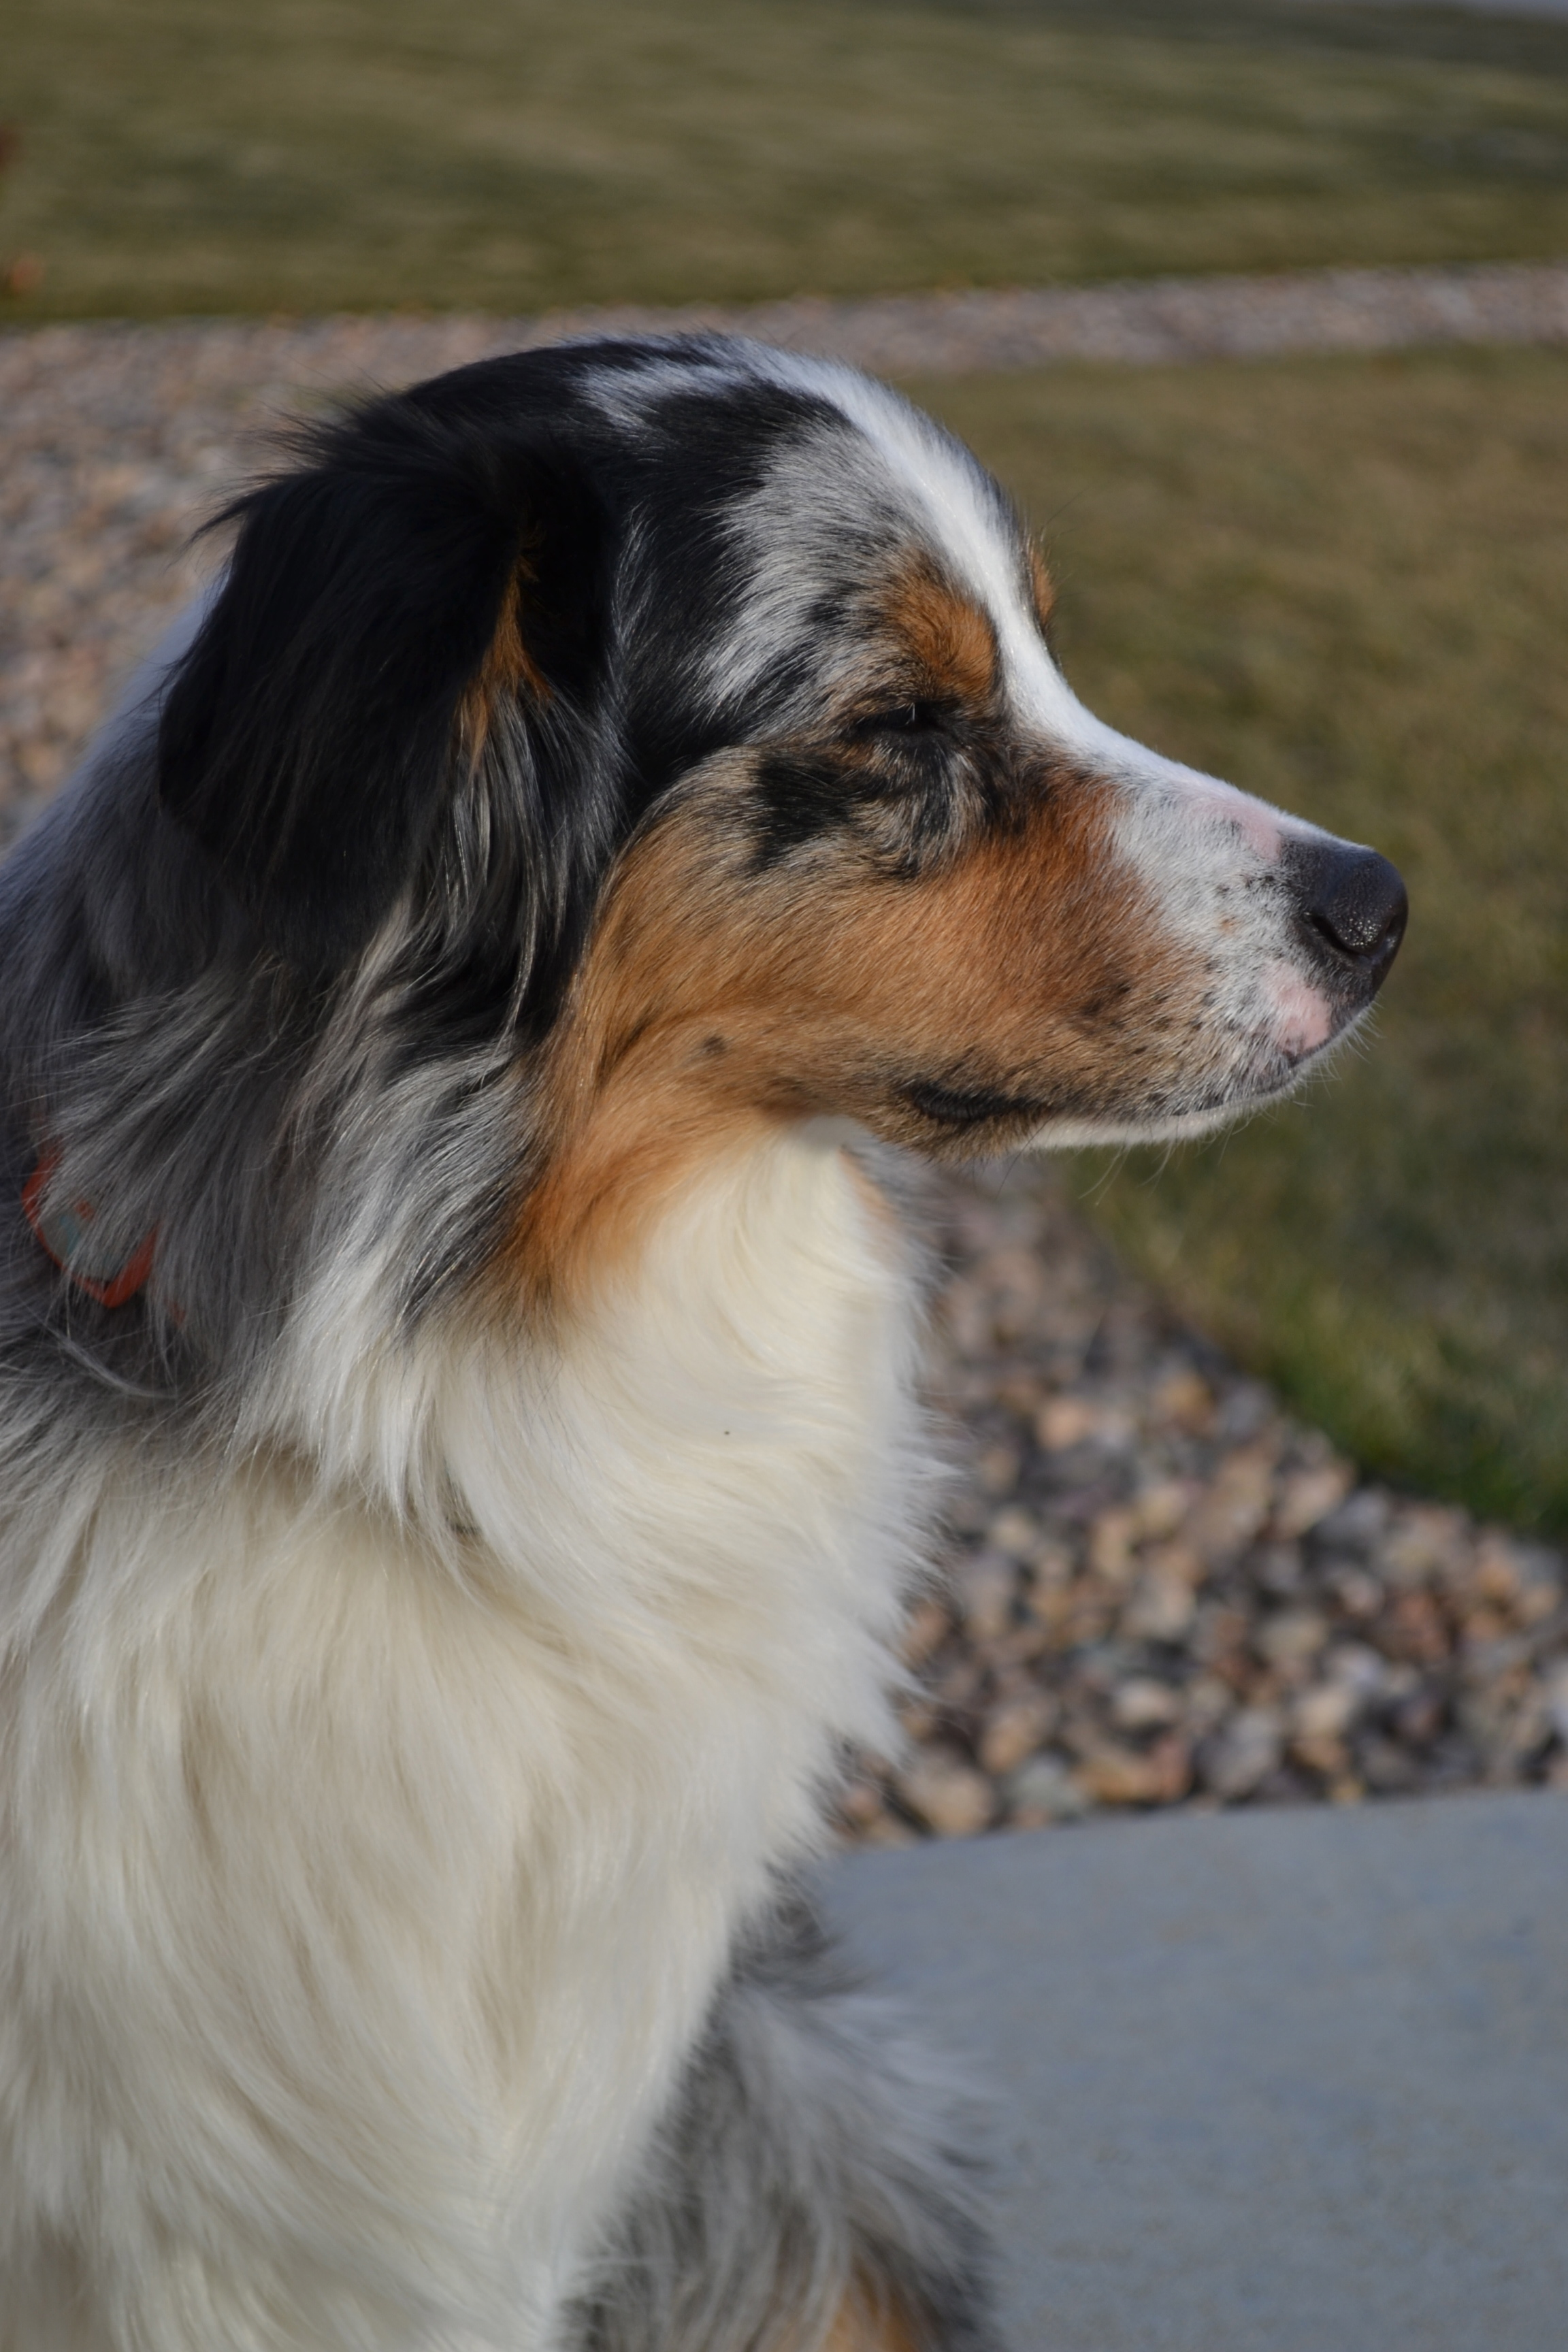 A picture of an Australian Shepherd